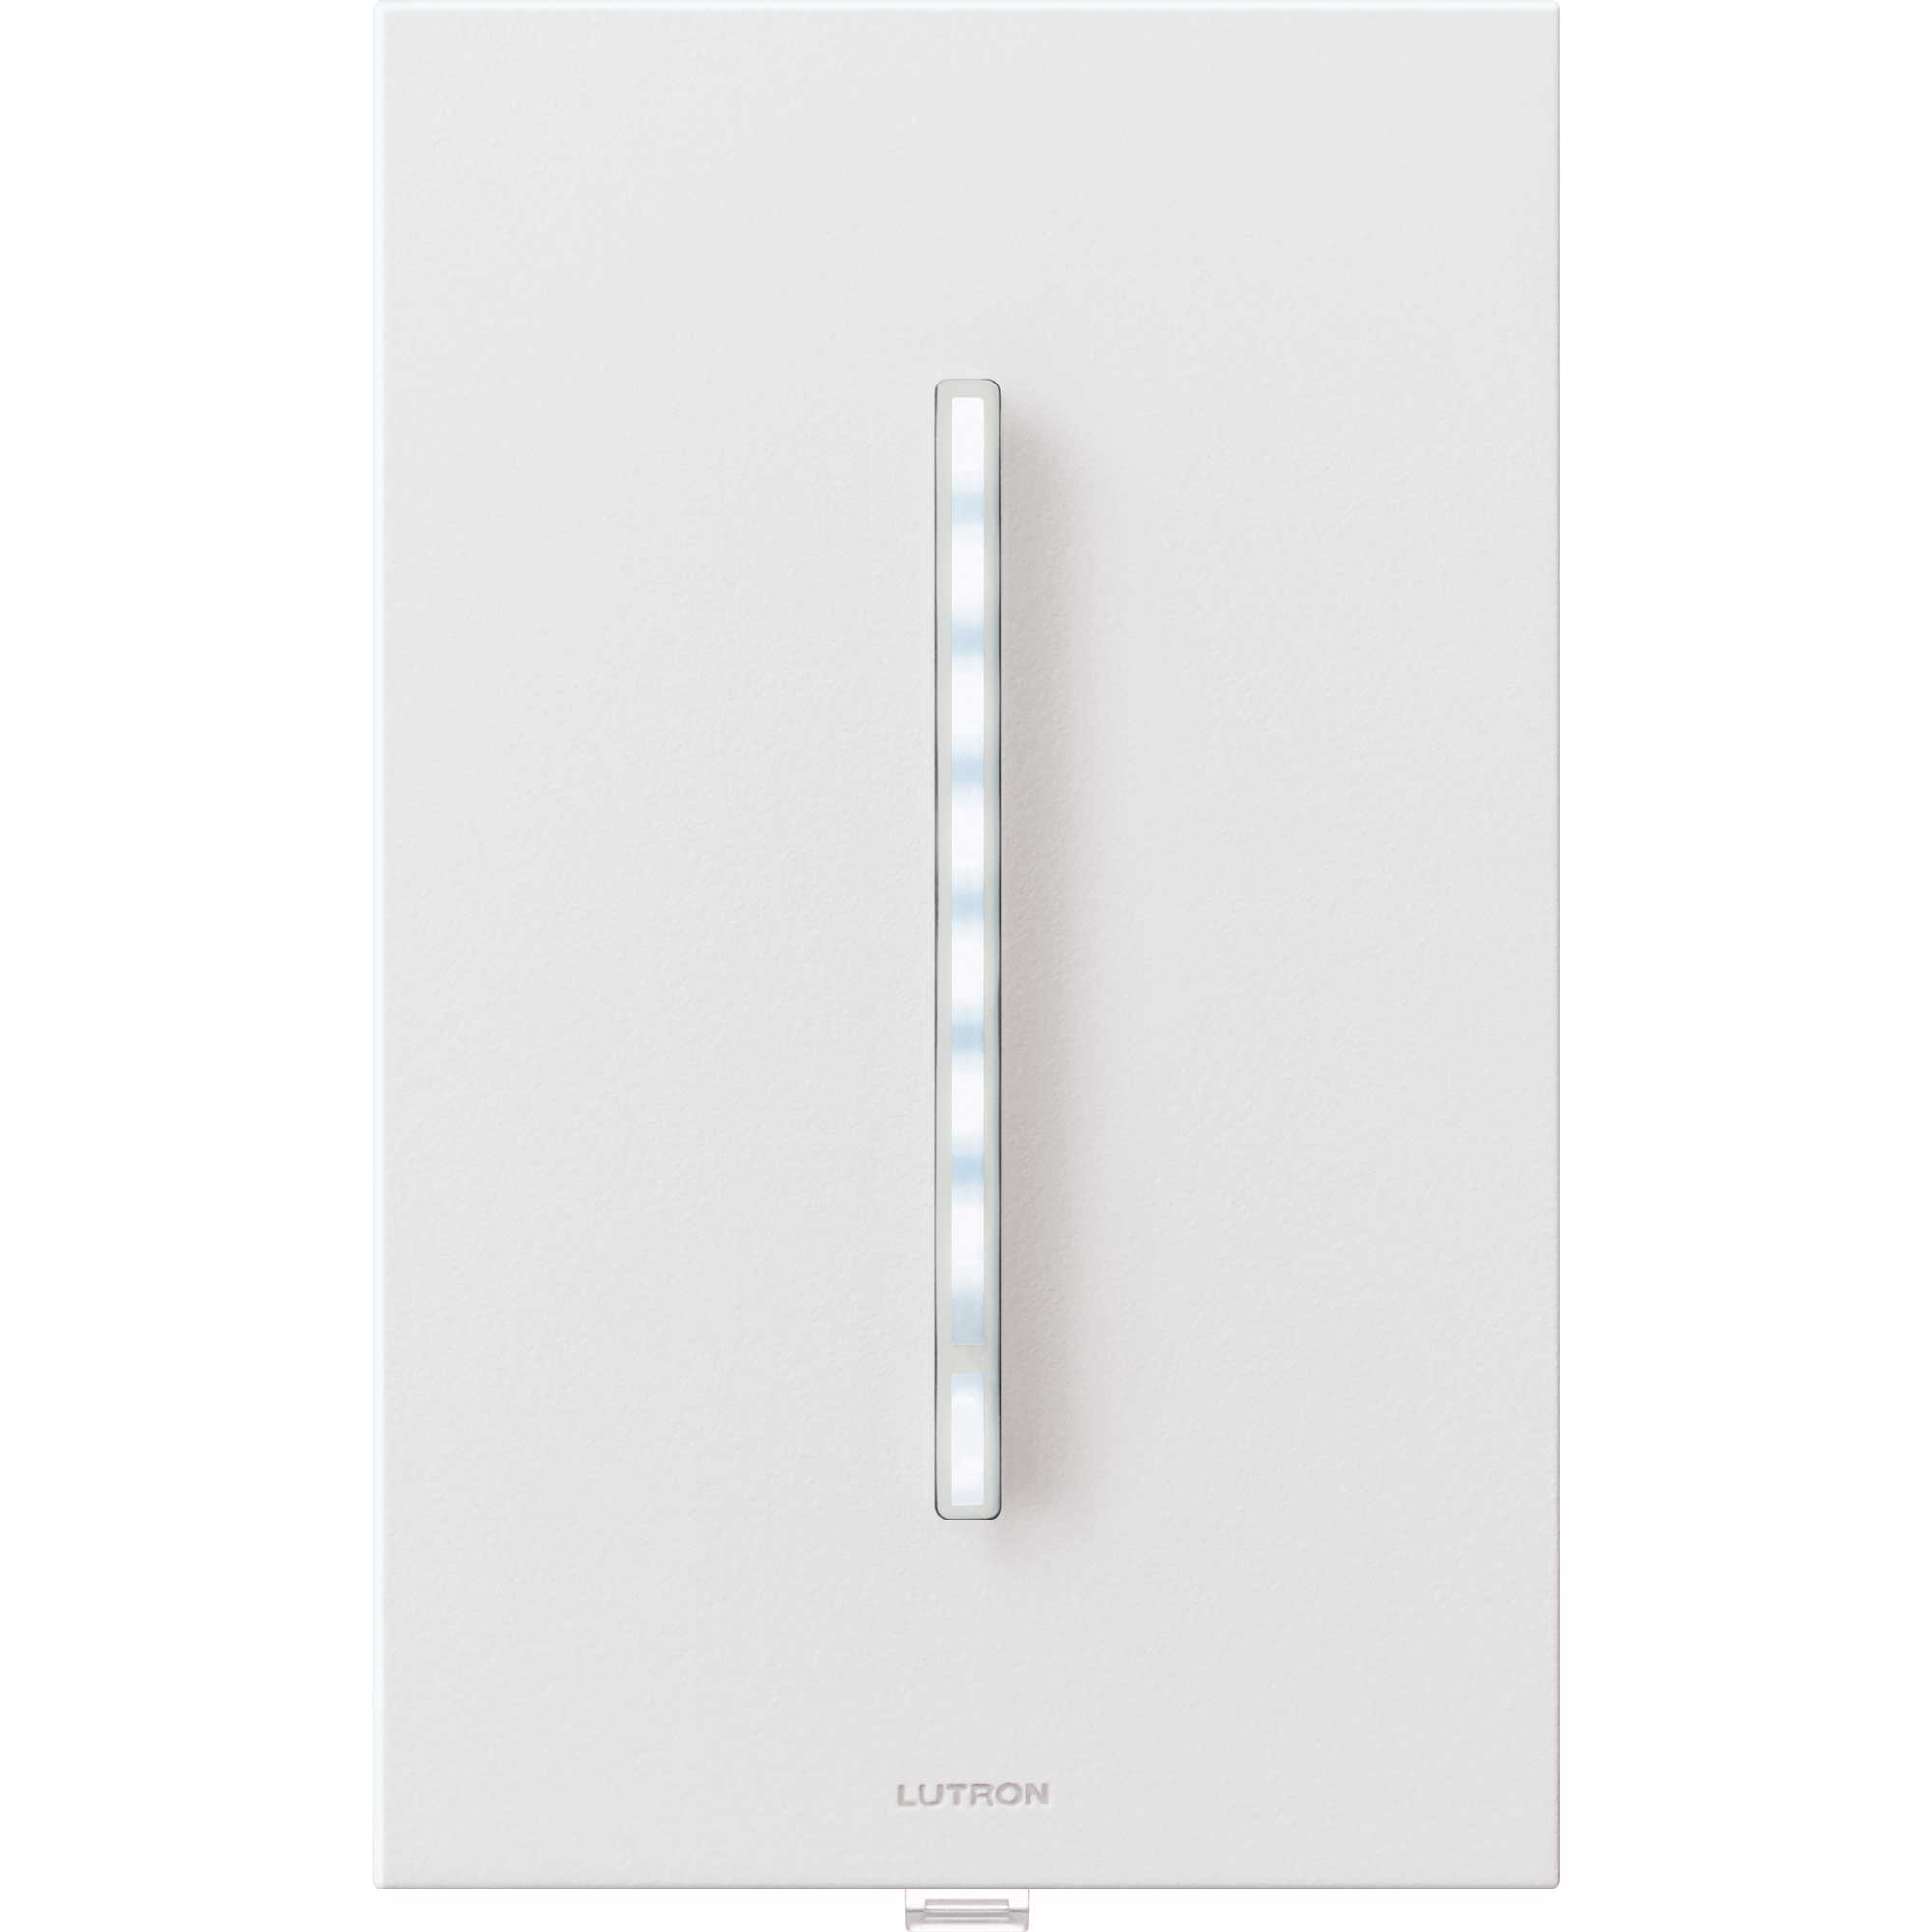 Grafik T Multi Location C L Dimmer By Lutron Gt 250m Wh Wiring Diagram Ma R